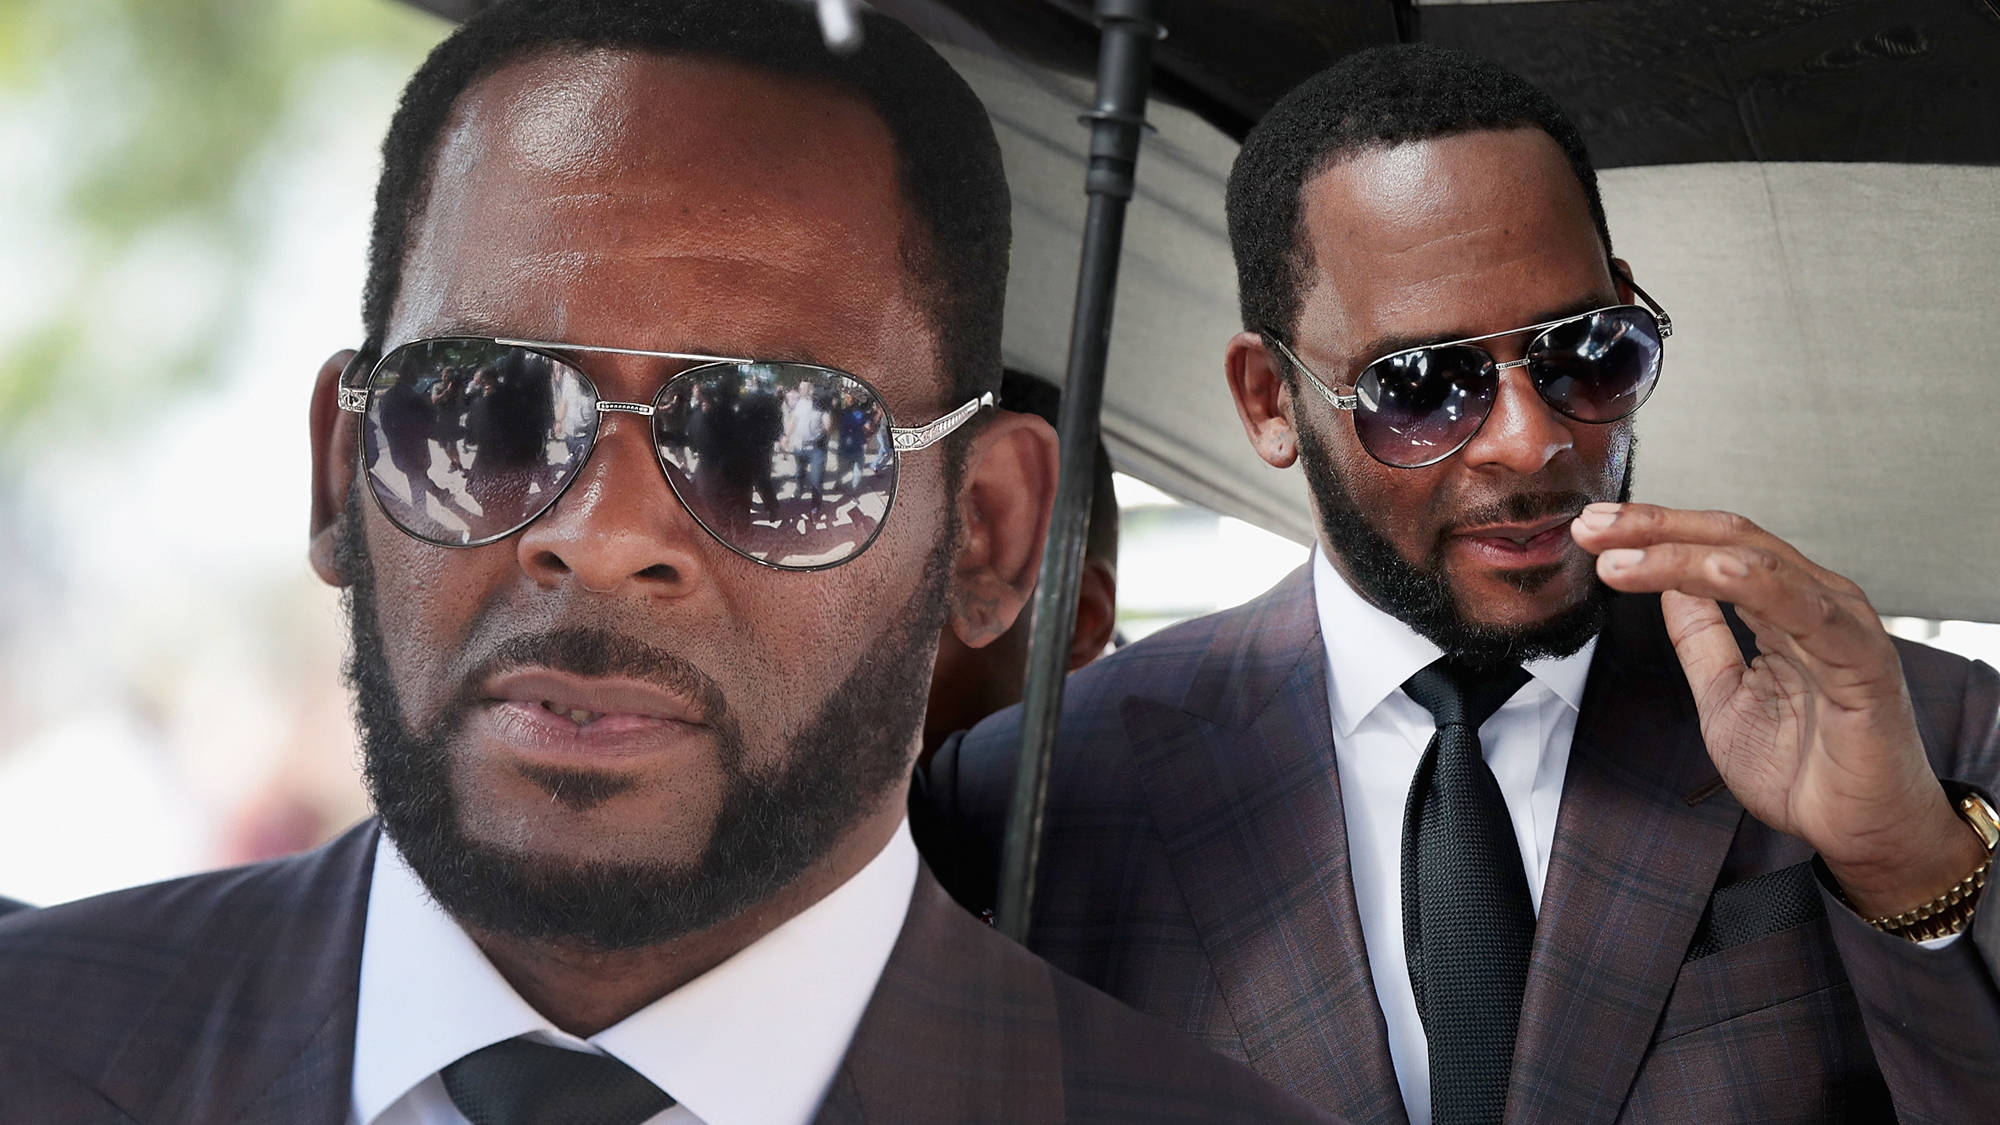 R. Kelly Arrested On Federal Sex Trafficking Charges In Chicago